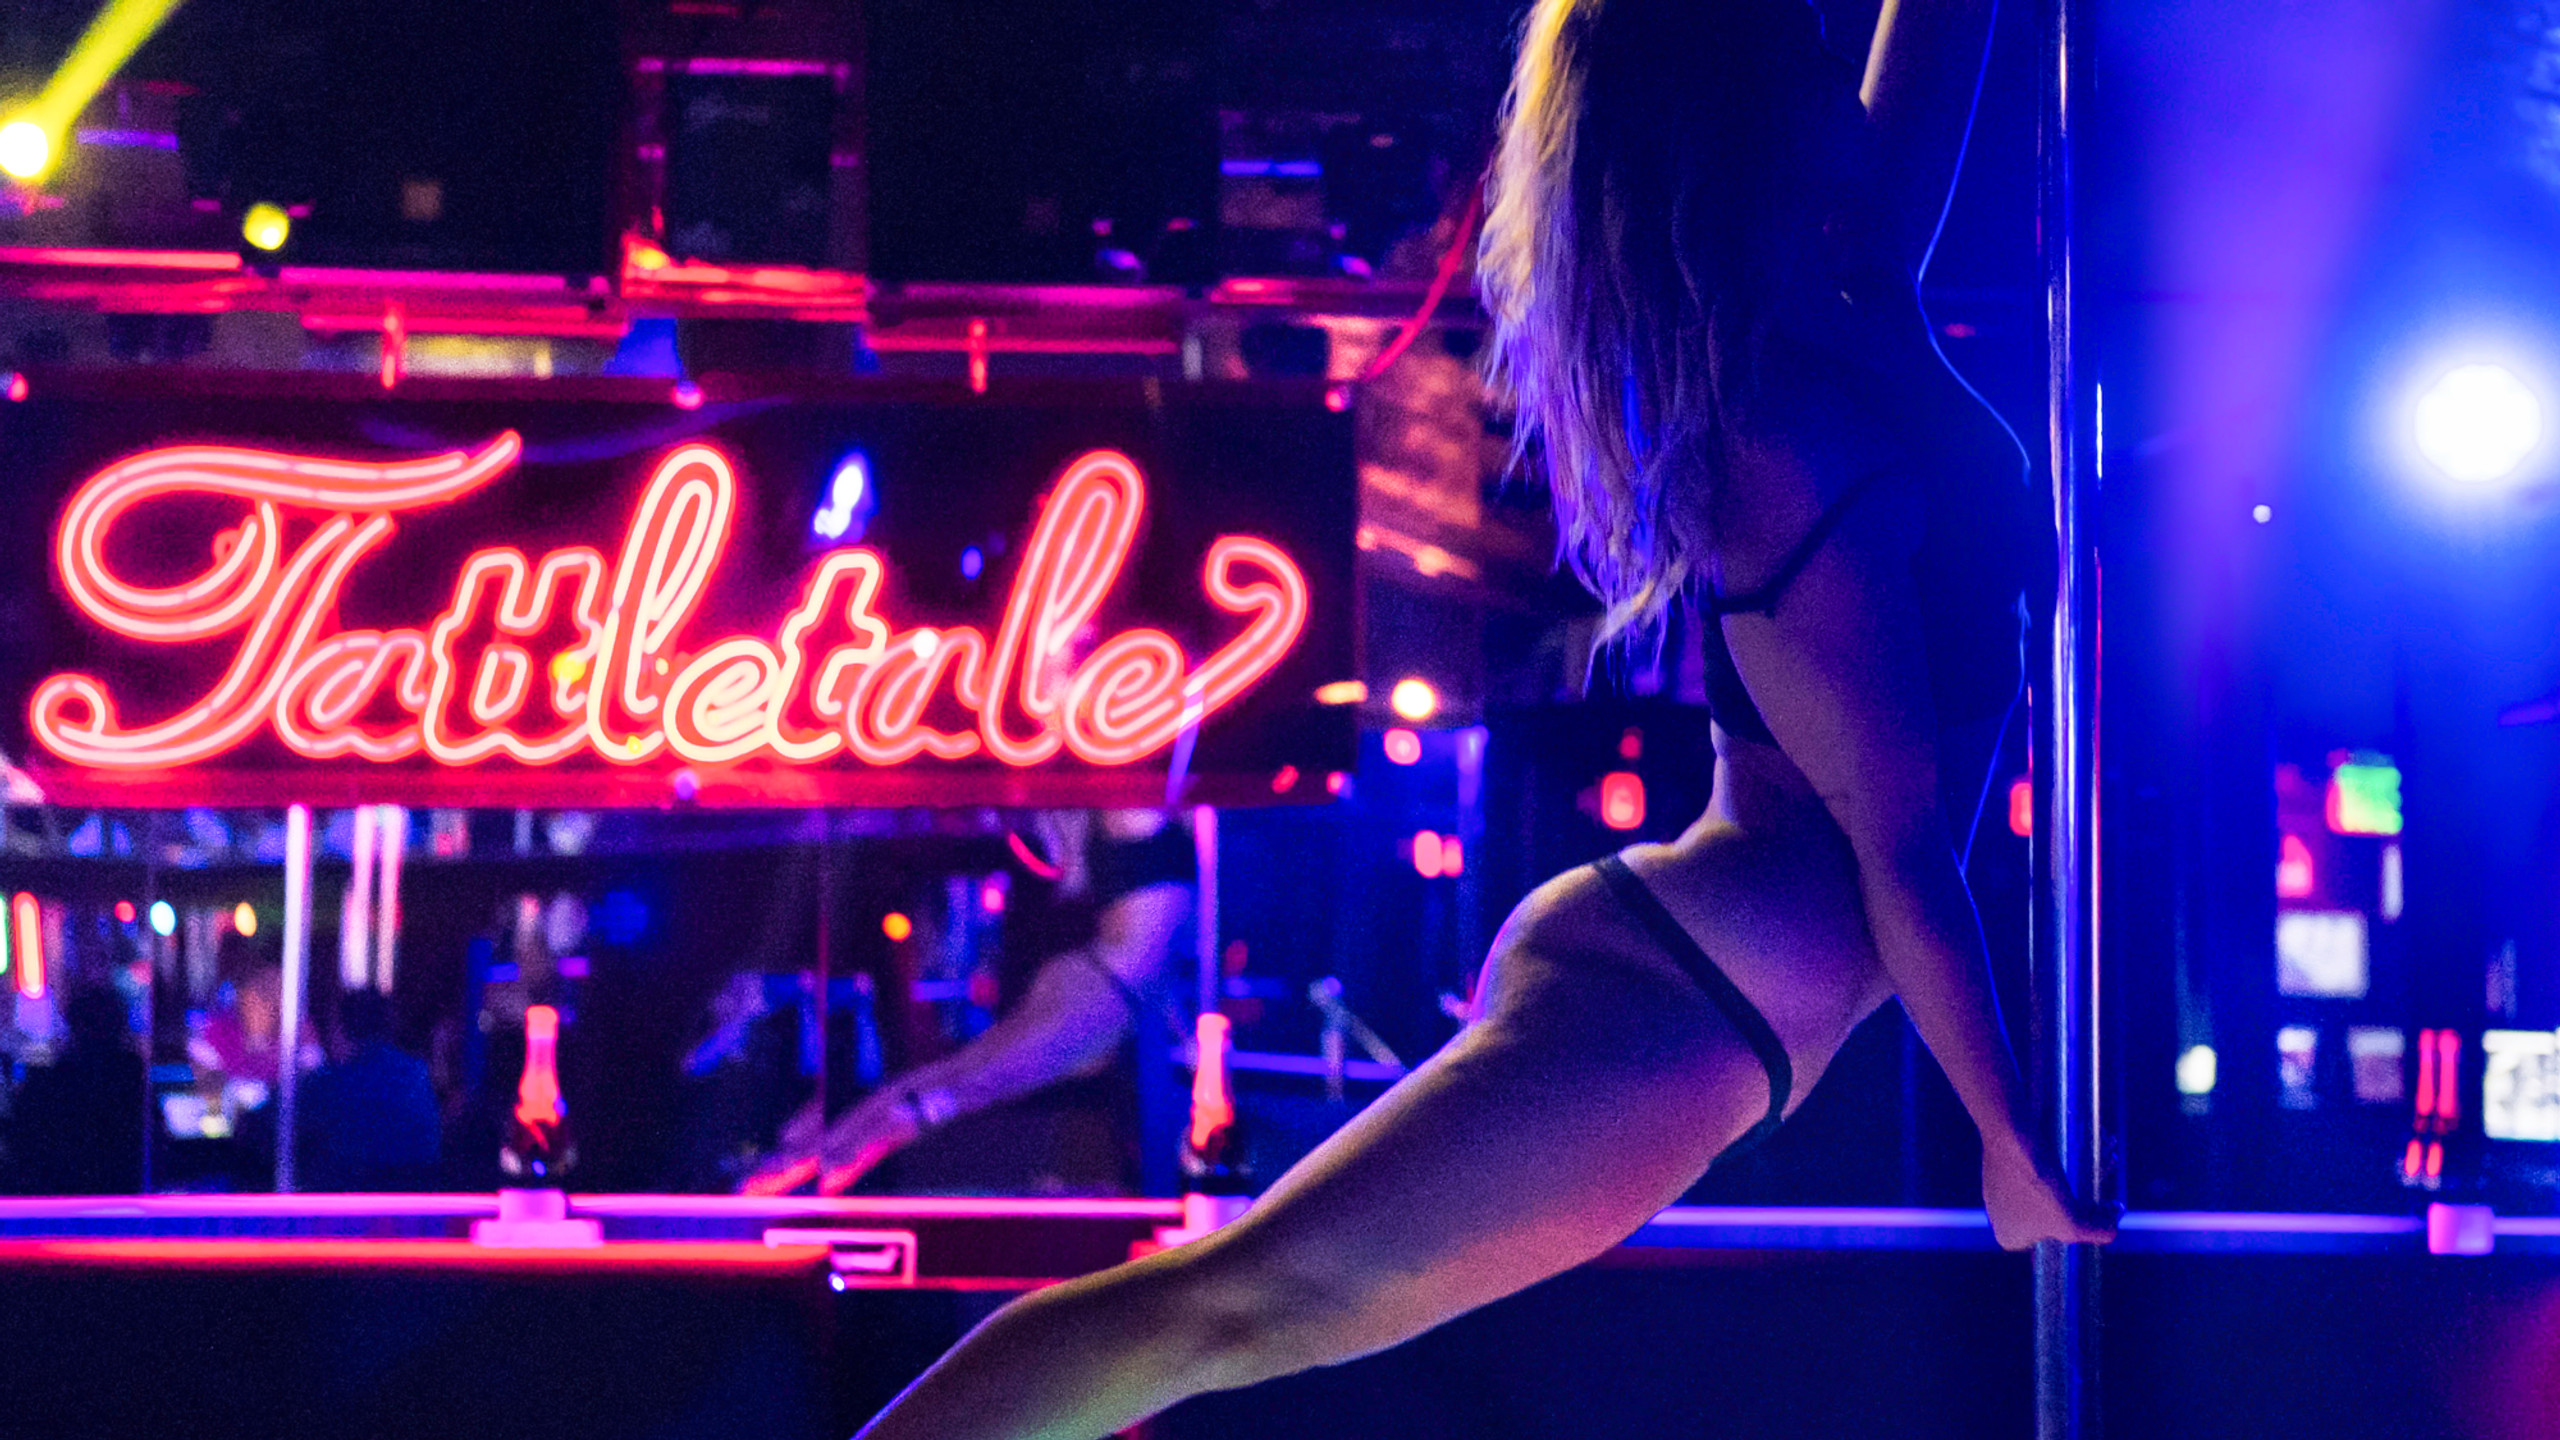 """The Tattletale Lounge has been an Atlanta establishment for over 40 years, and is even mentioned in Mötley Crüe's hit song, """"Girls, Girls, Girls."""""""